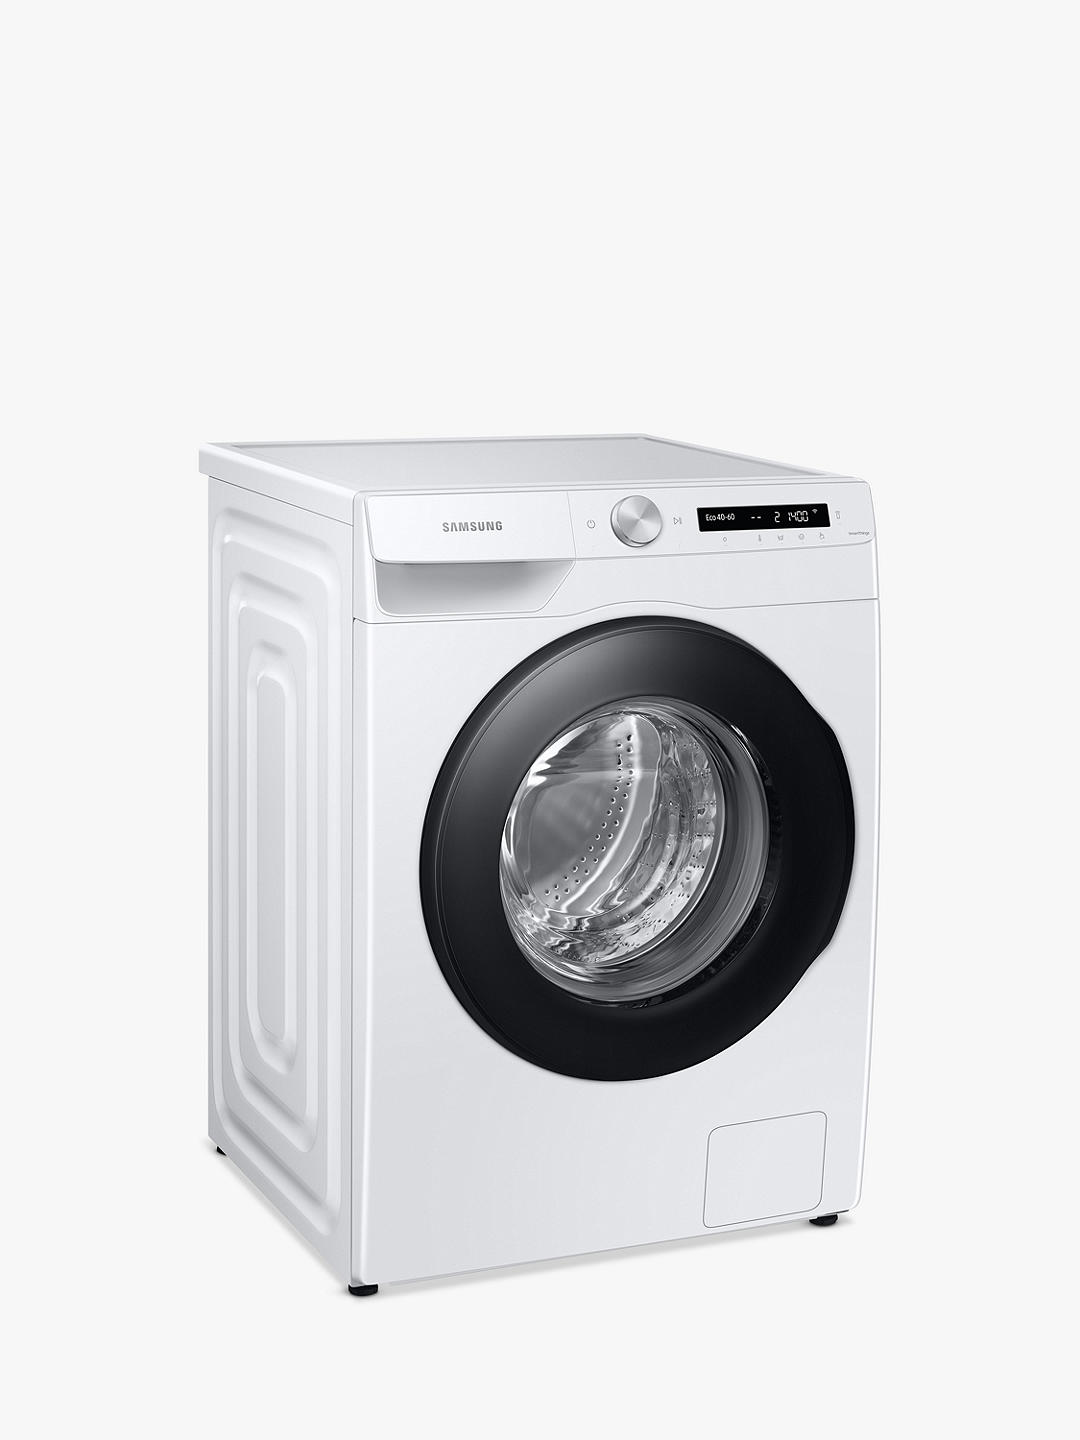 Buy Samsung Series 5+ WW90T534DAW Freestanding ecobubble™ Washing Machine, 9kg Load, 1400rpm Spin, White Online at johnlewis.com